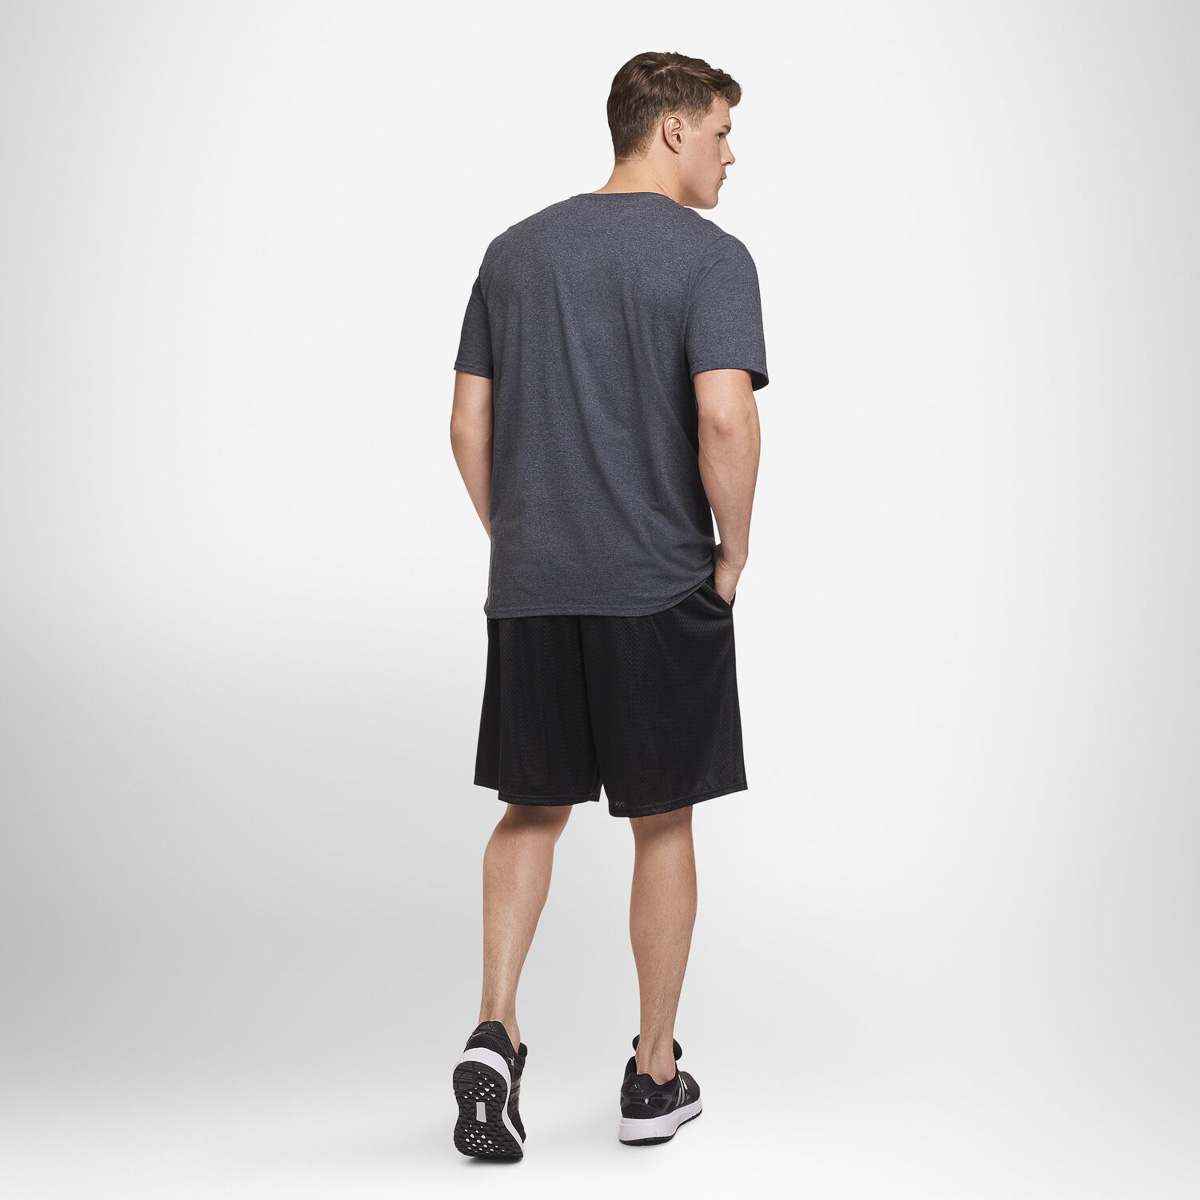 Russell-Athletic-Mens-Shorts-With-Pockets-Mesh-Moisture-Wicking-Gym-Activewear thumbnail 3